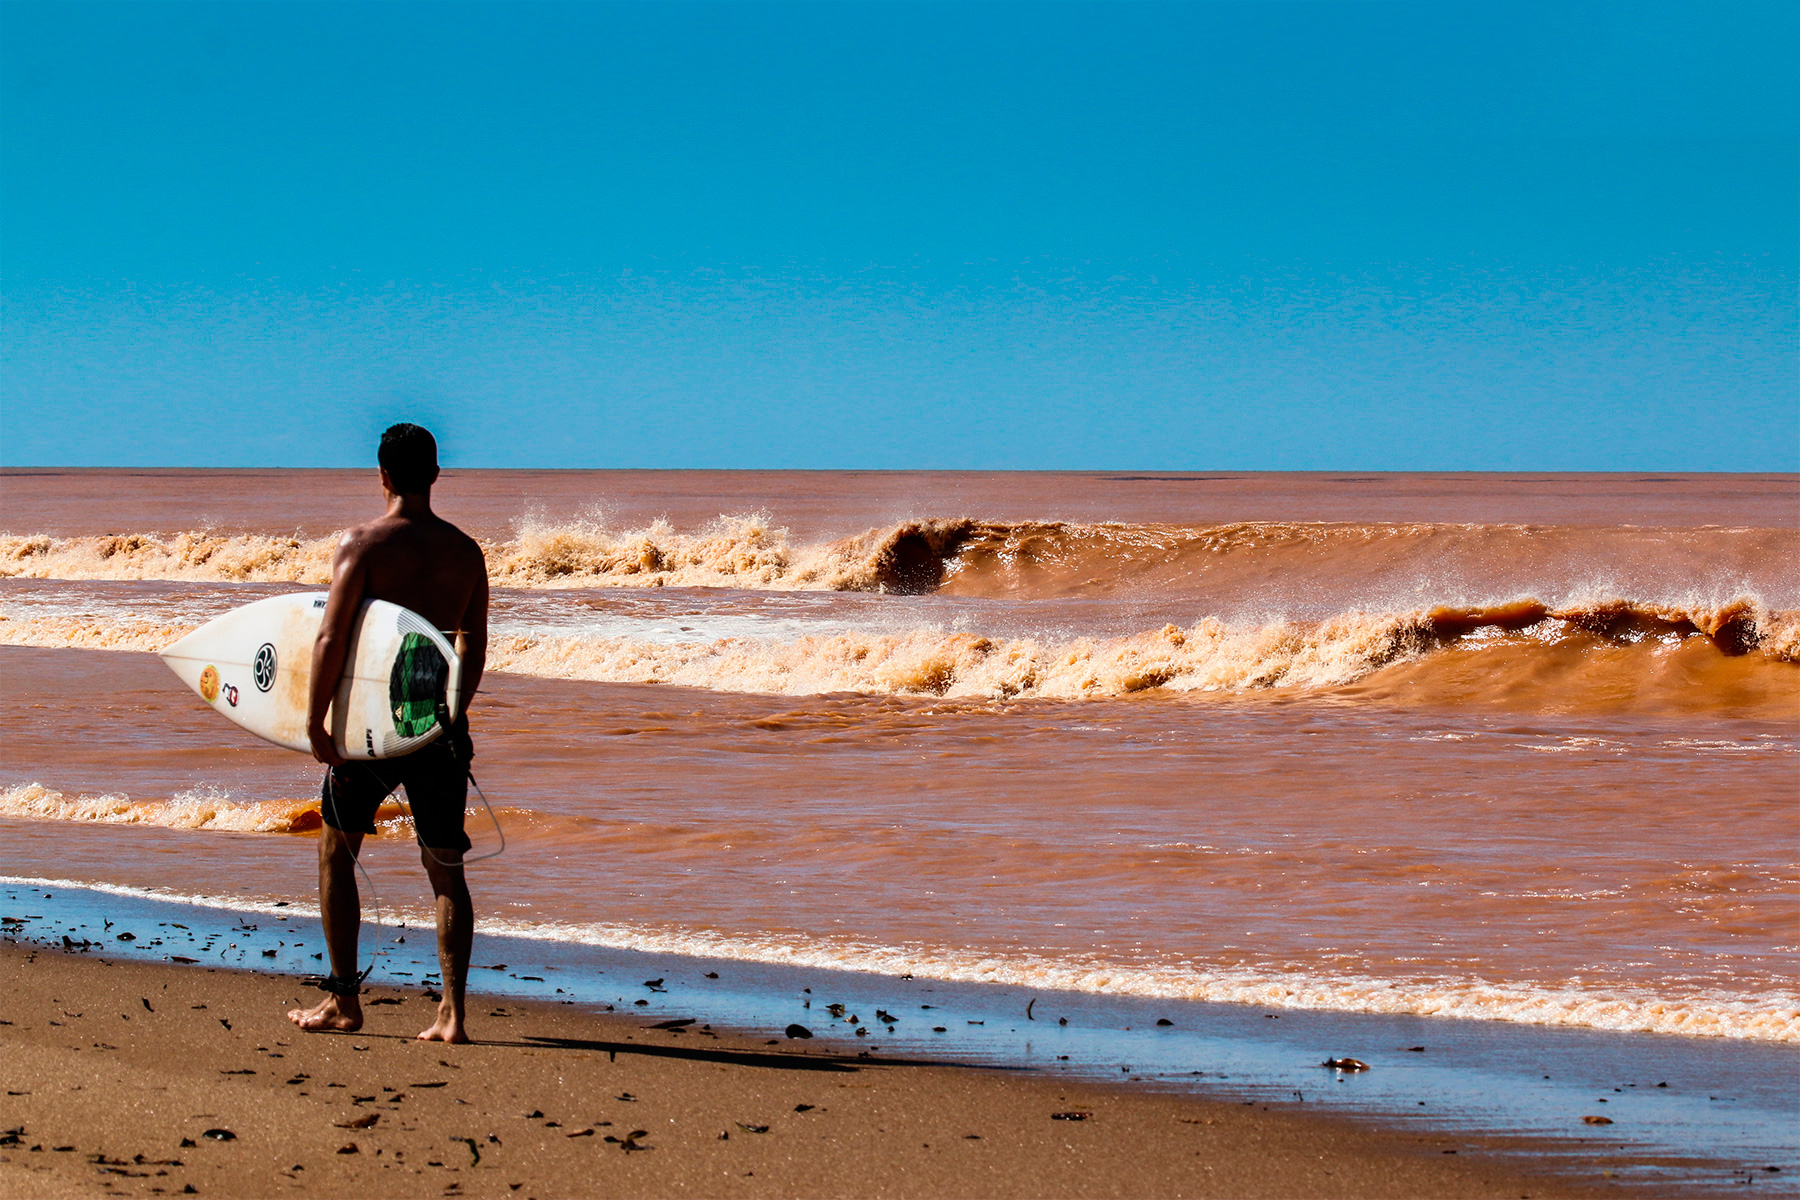 a surfer walking on the beach in regencia, brazil, where toxic mud pollutes the surf break